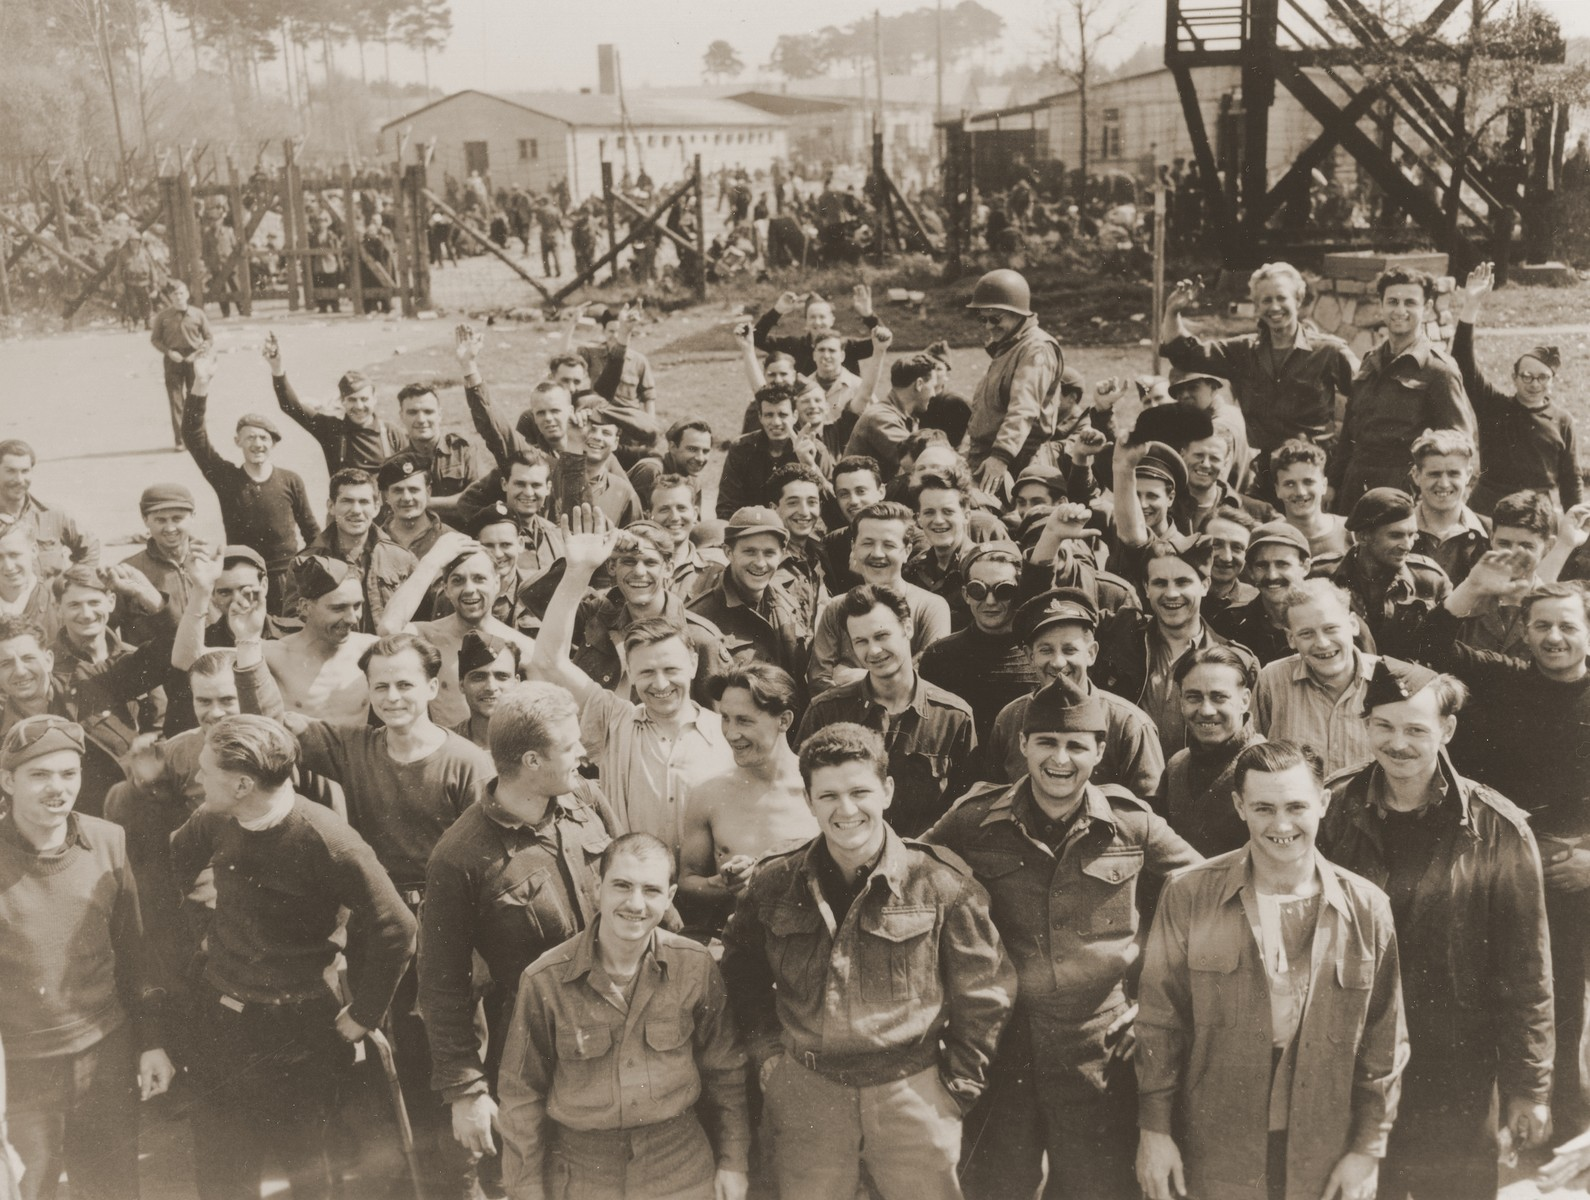 American POWs greet soldiers from the 45th Infantry Division during the liberation of the Fischbach POW camp.